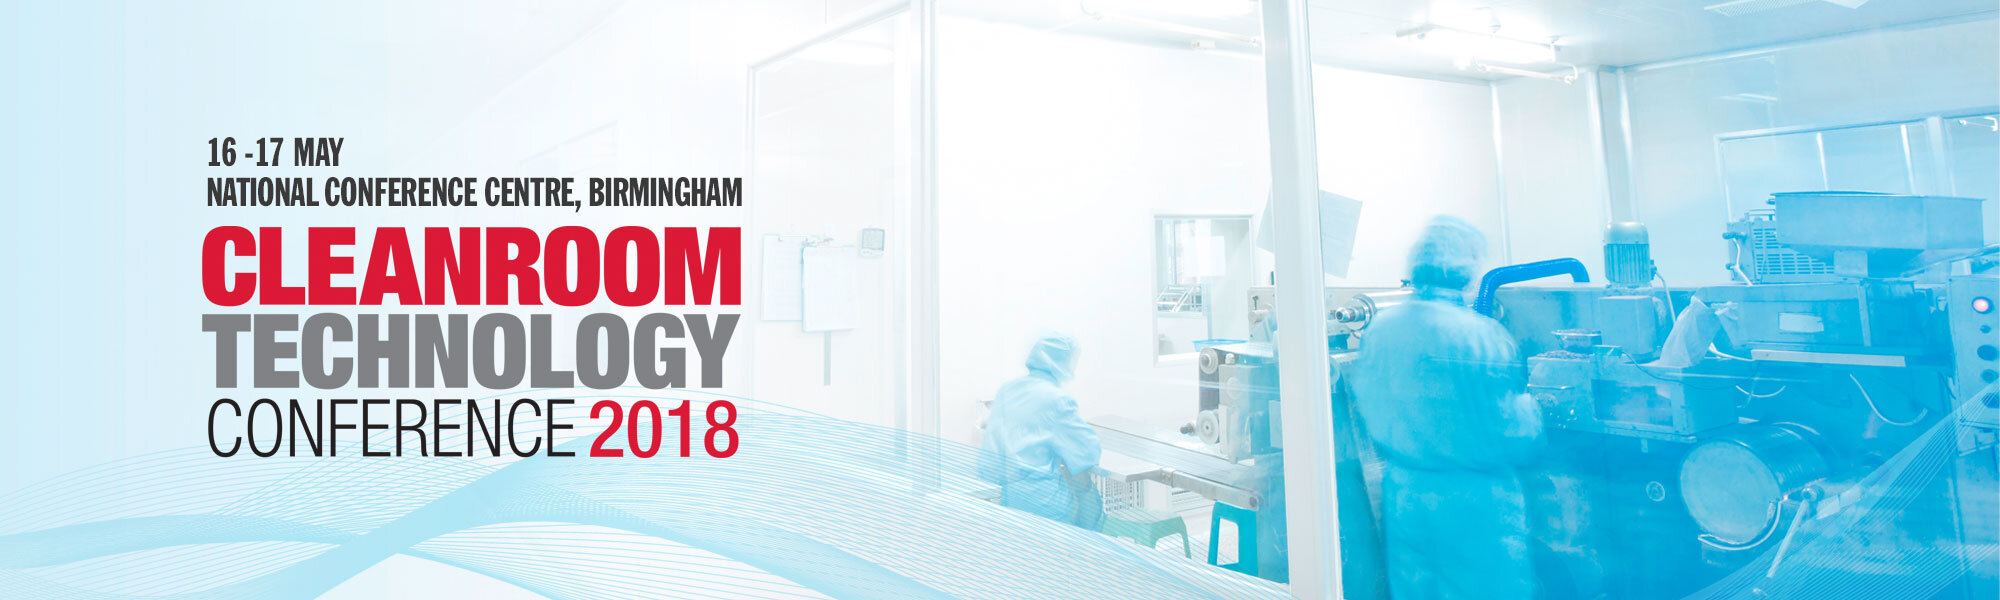 Cleanroom Technology Conference